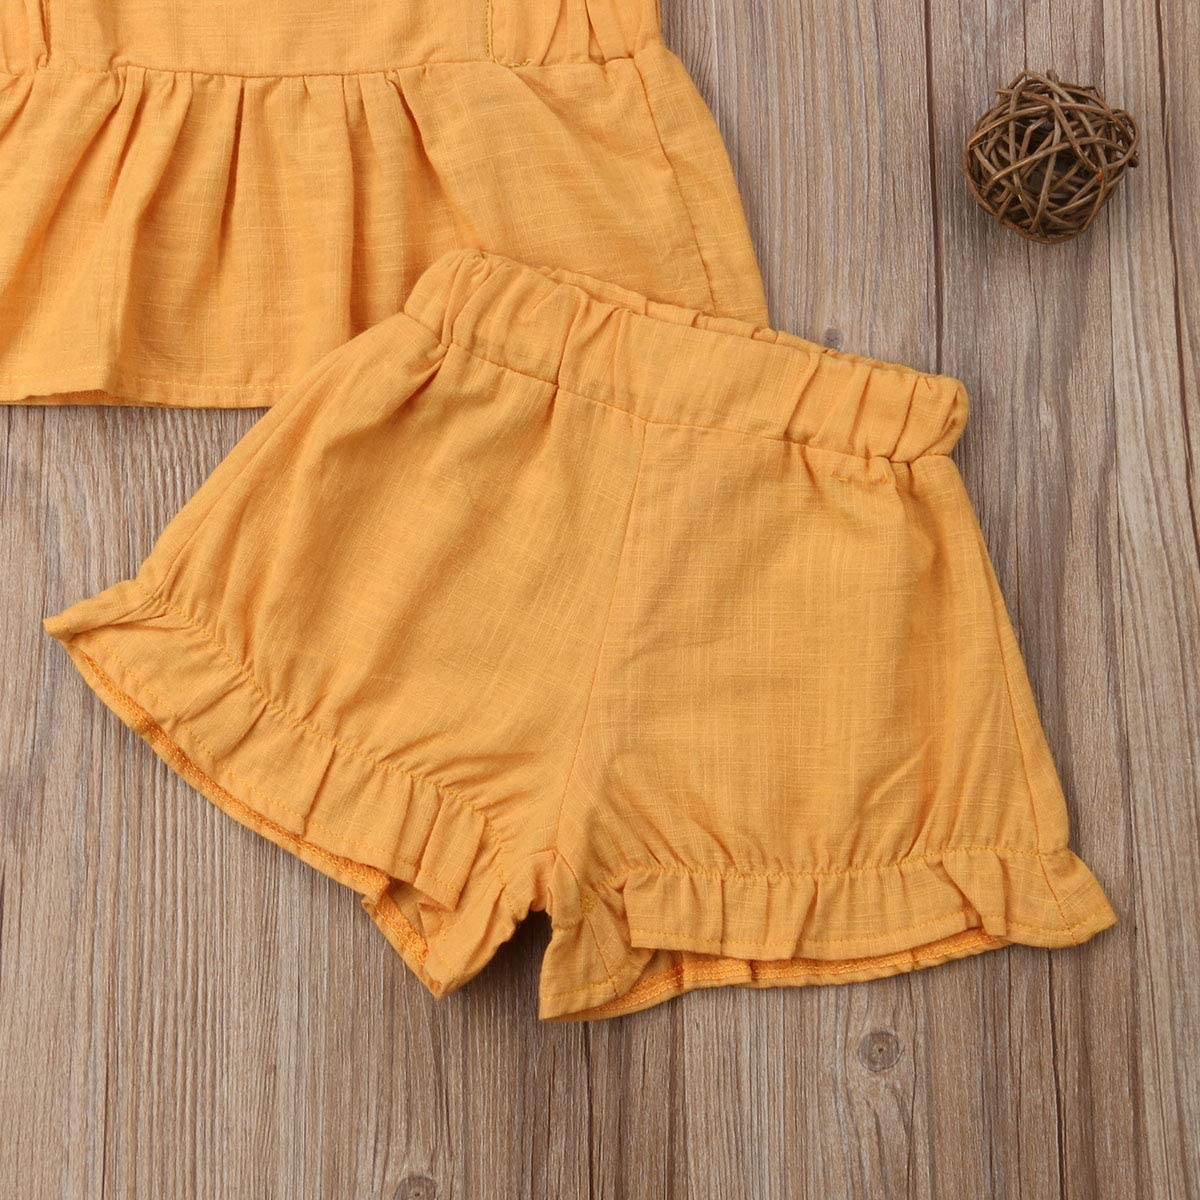 Summer Newborn Toddler Baby Girls Ruffle Outfit Sleeveless Back Cross Vest Top Shorts Sets Cotton Clothes